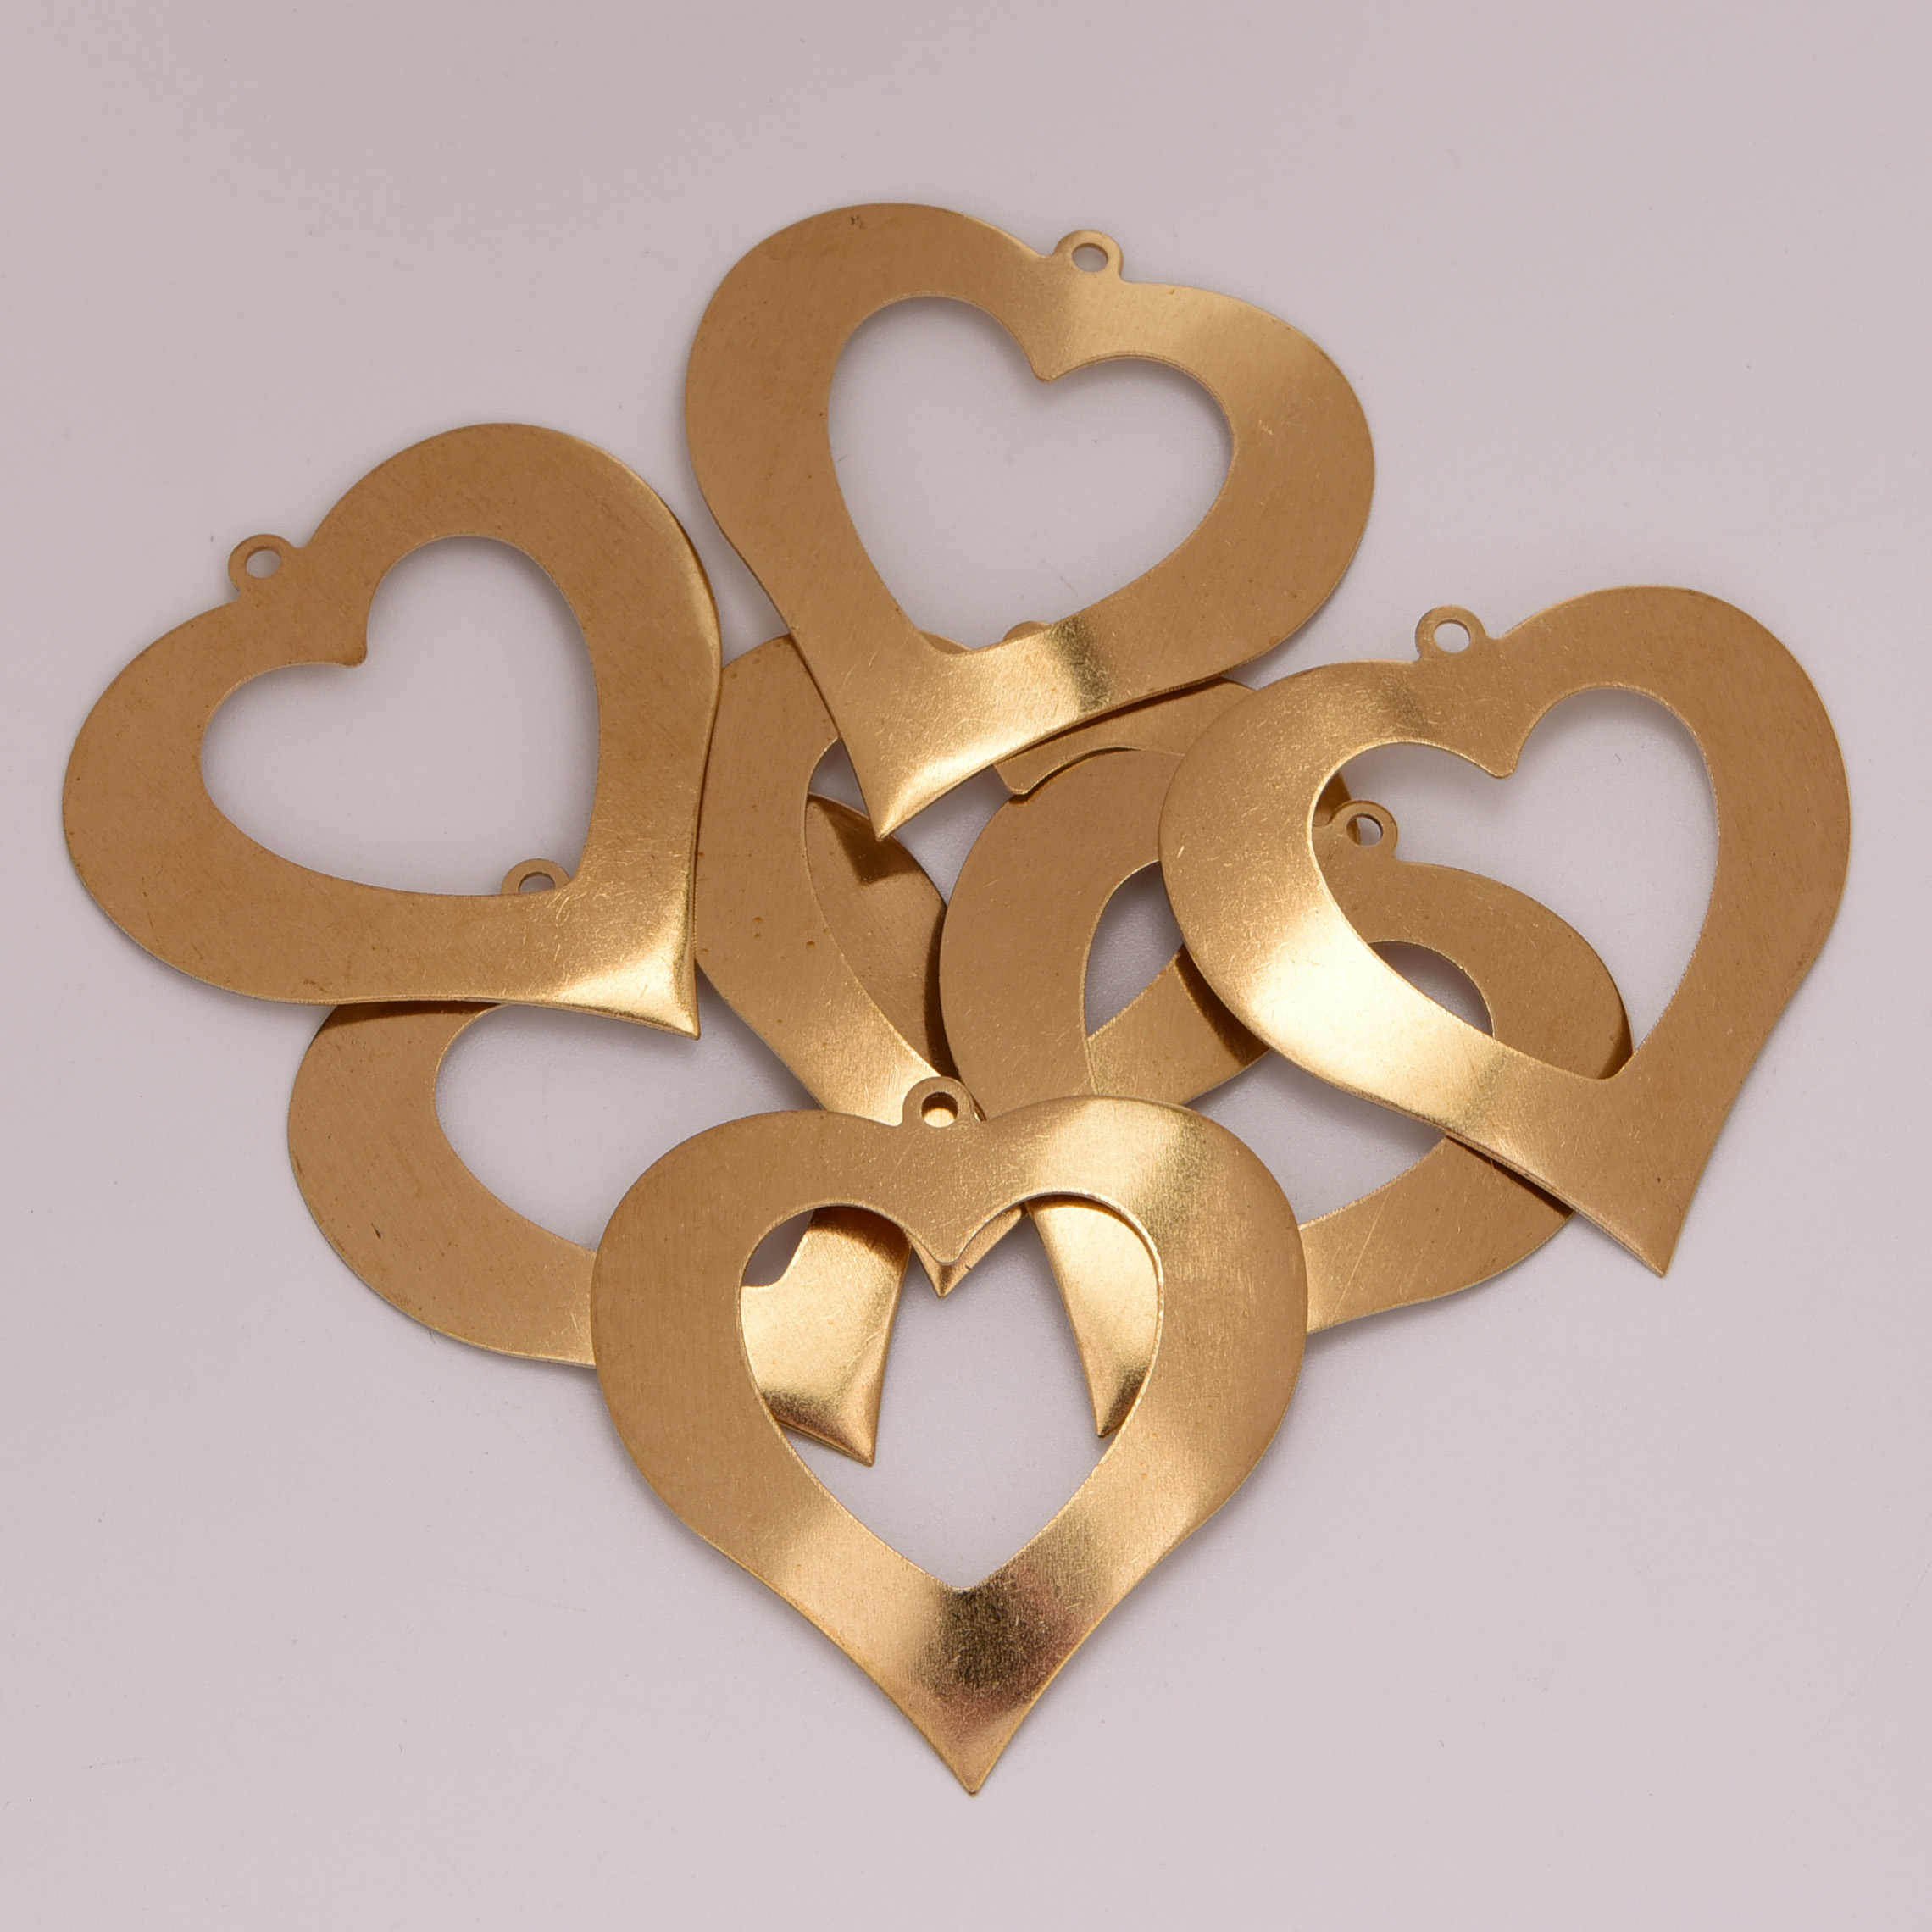 39mm 5pcs Copper Love Contour Heart Charms Family And Friends